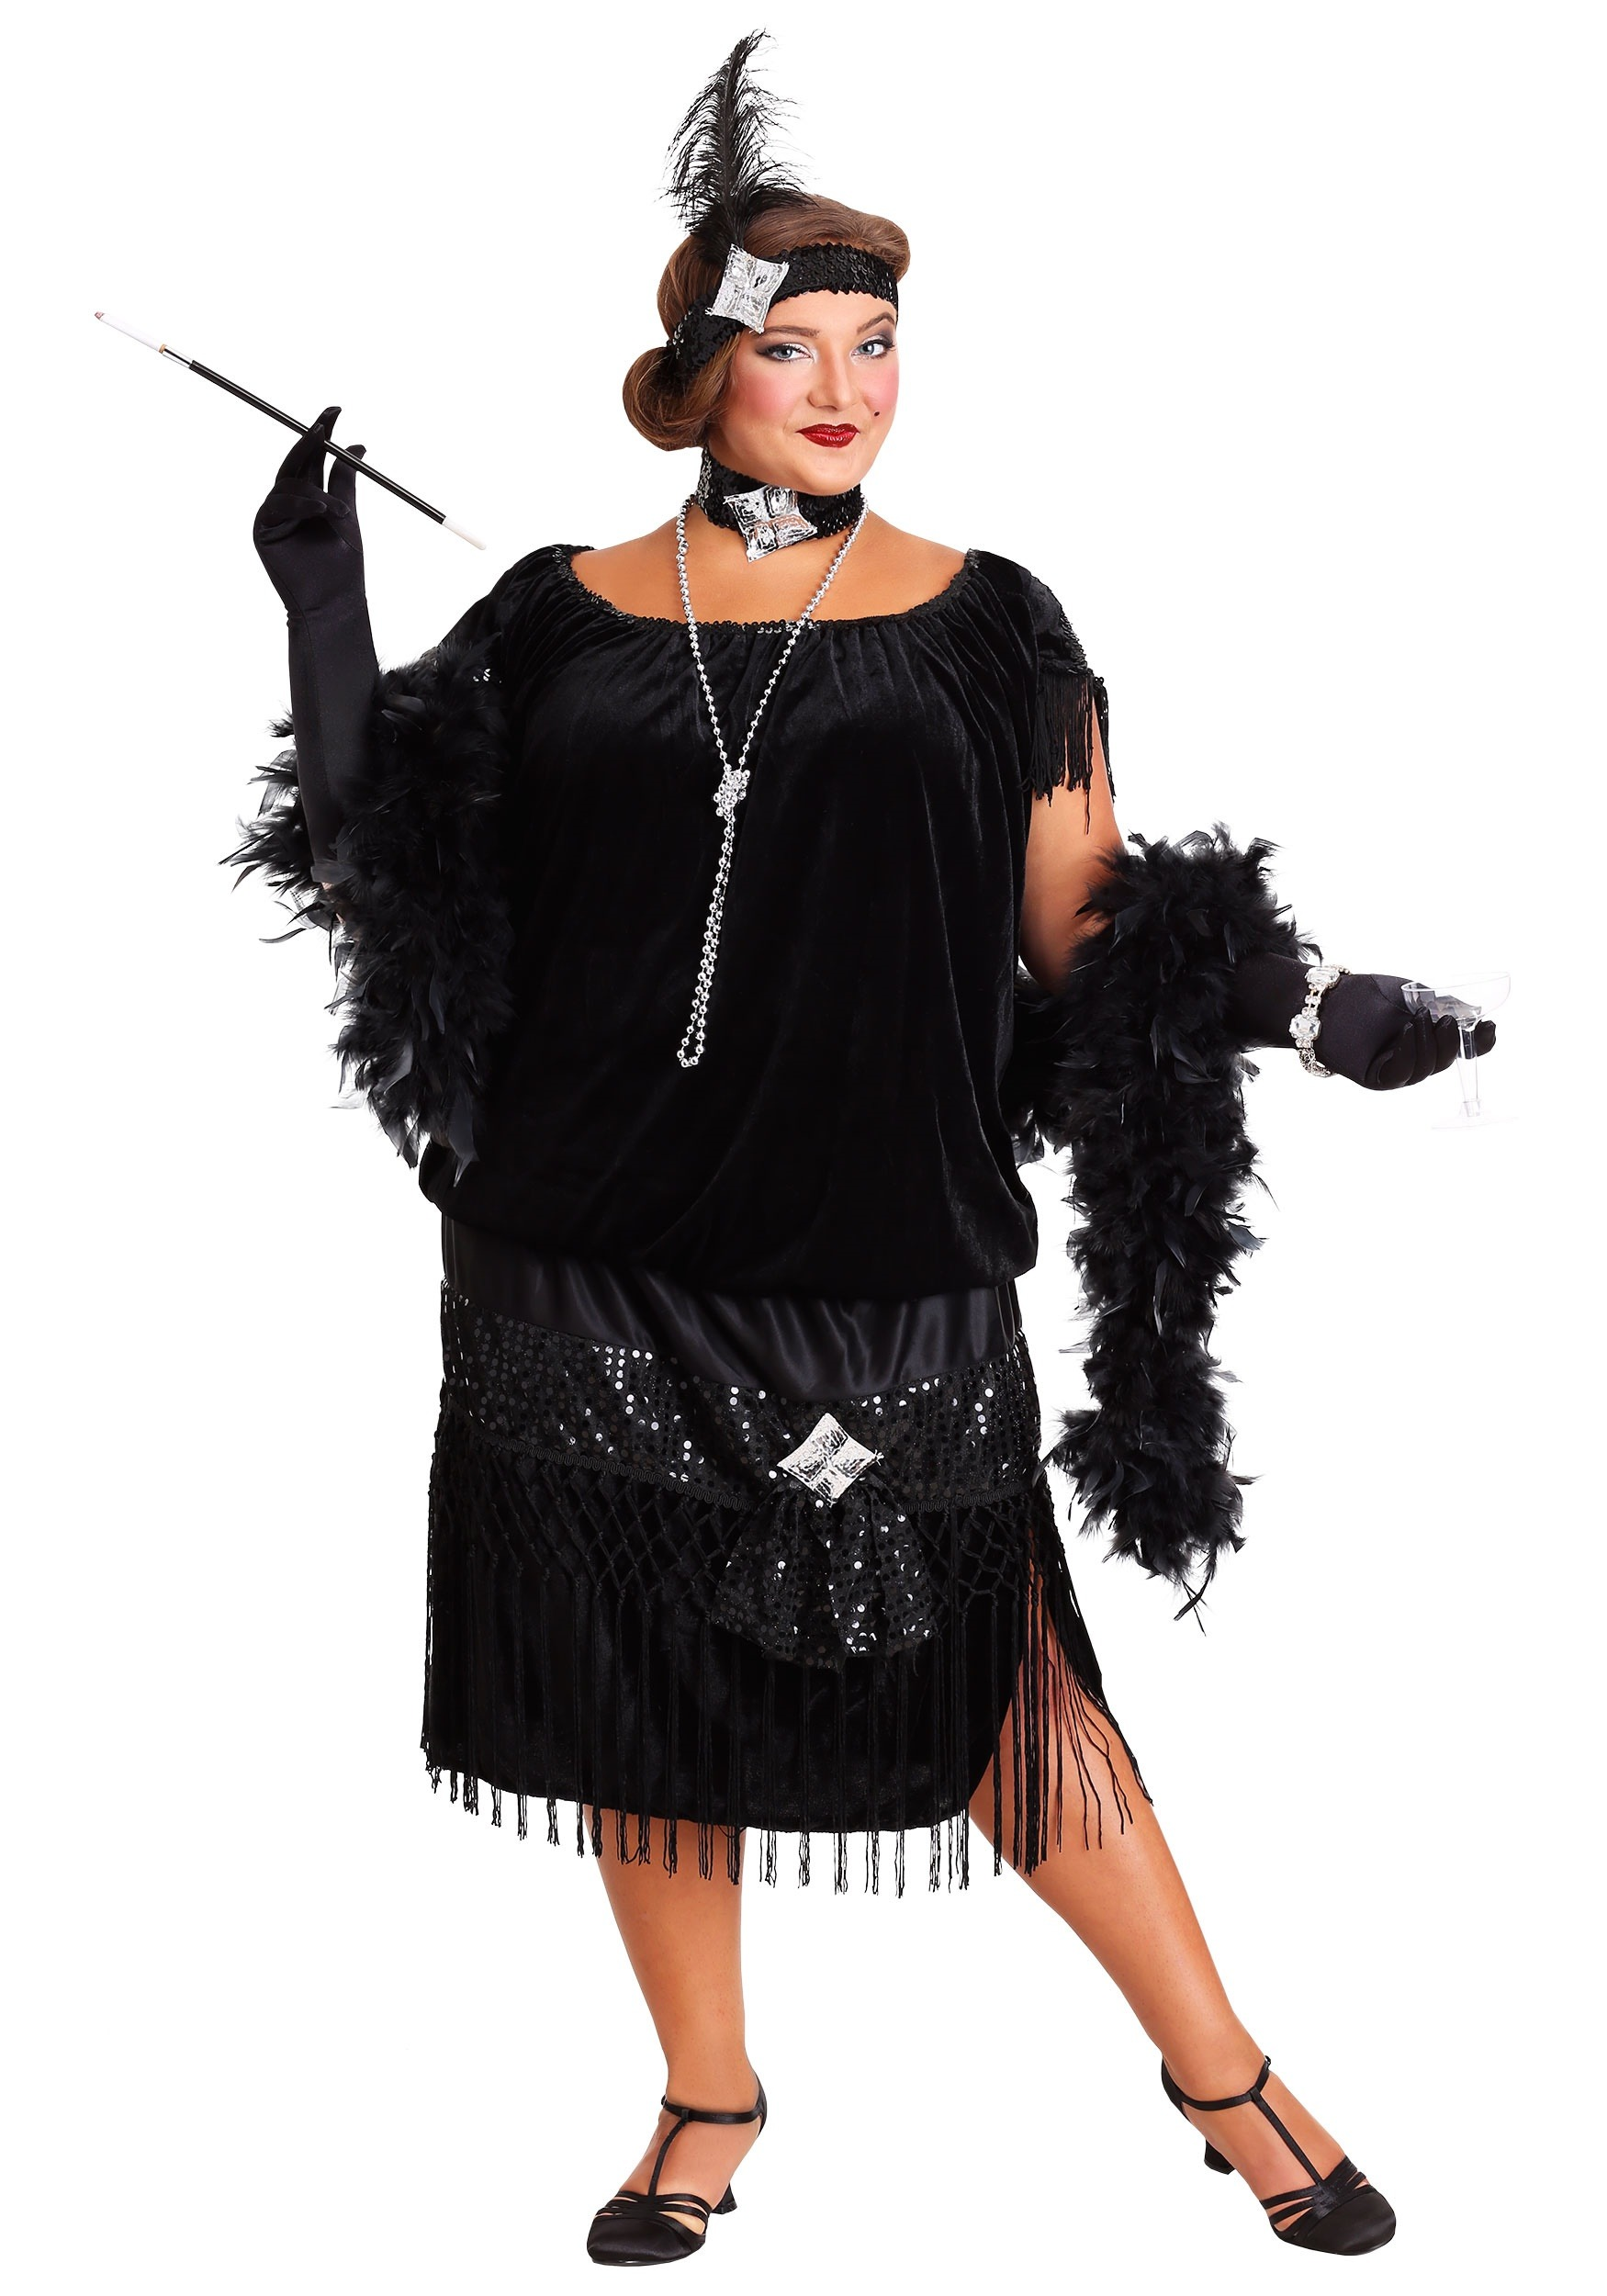 0262165a6a0 Plus Size Gangster Costume   ... Womenu0027s Plus Size 1920s Coco ...